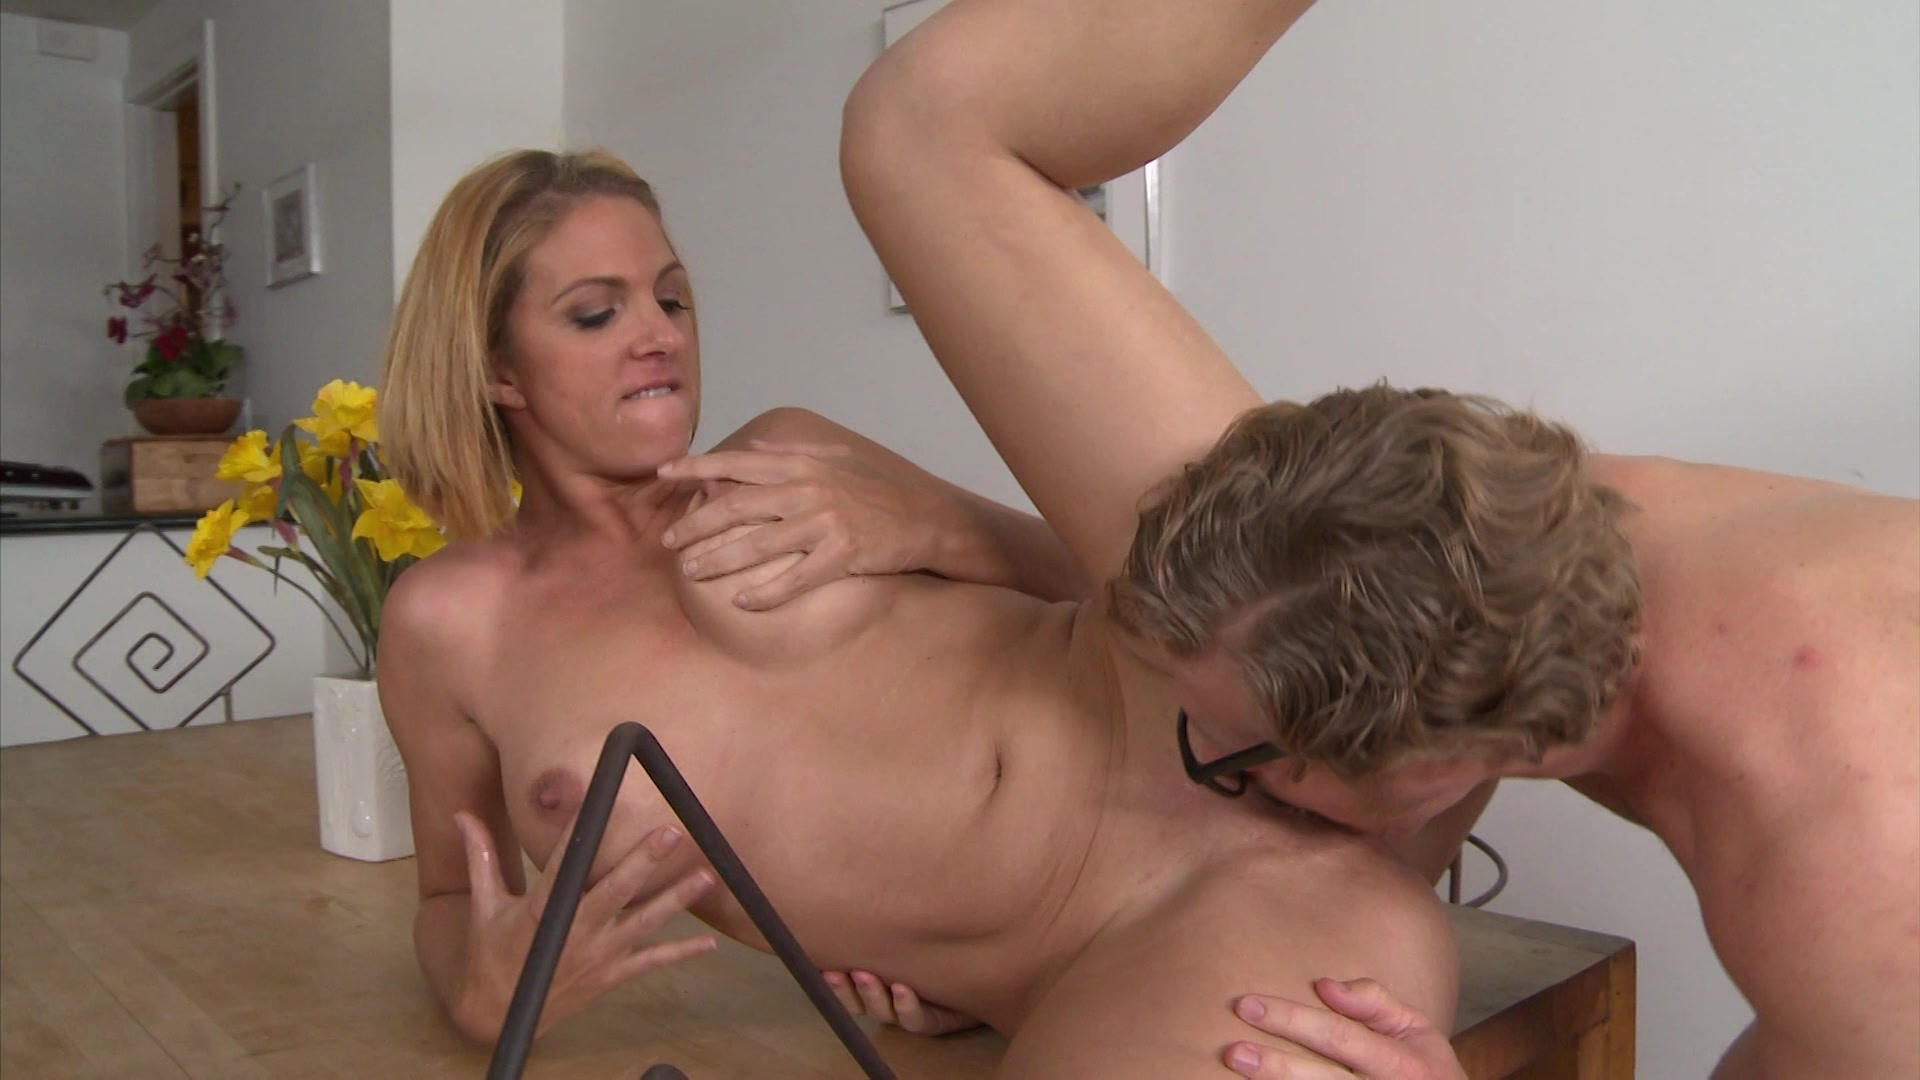 Roxanne hall biography free movies pictures milf porn